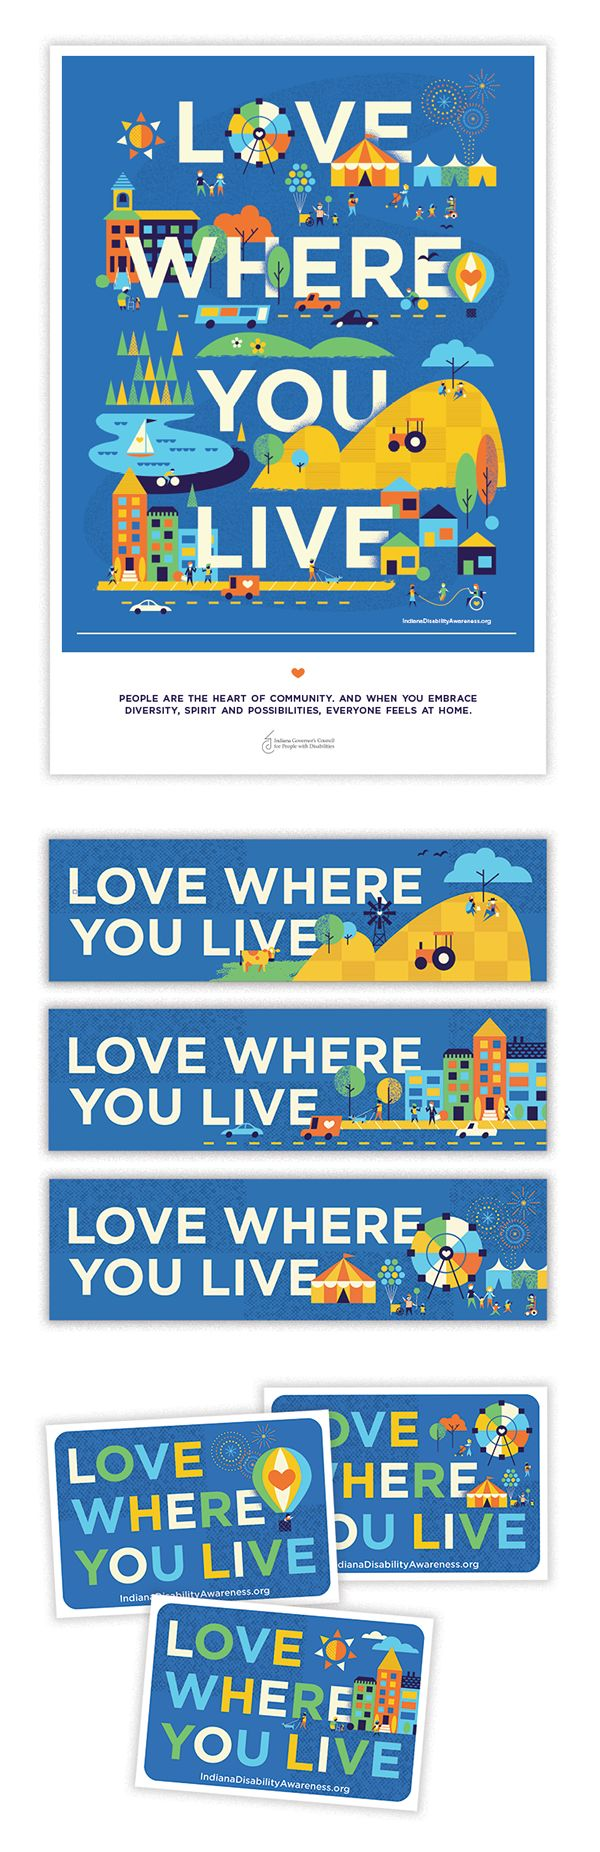 Love Where You Live on Behance